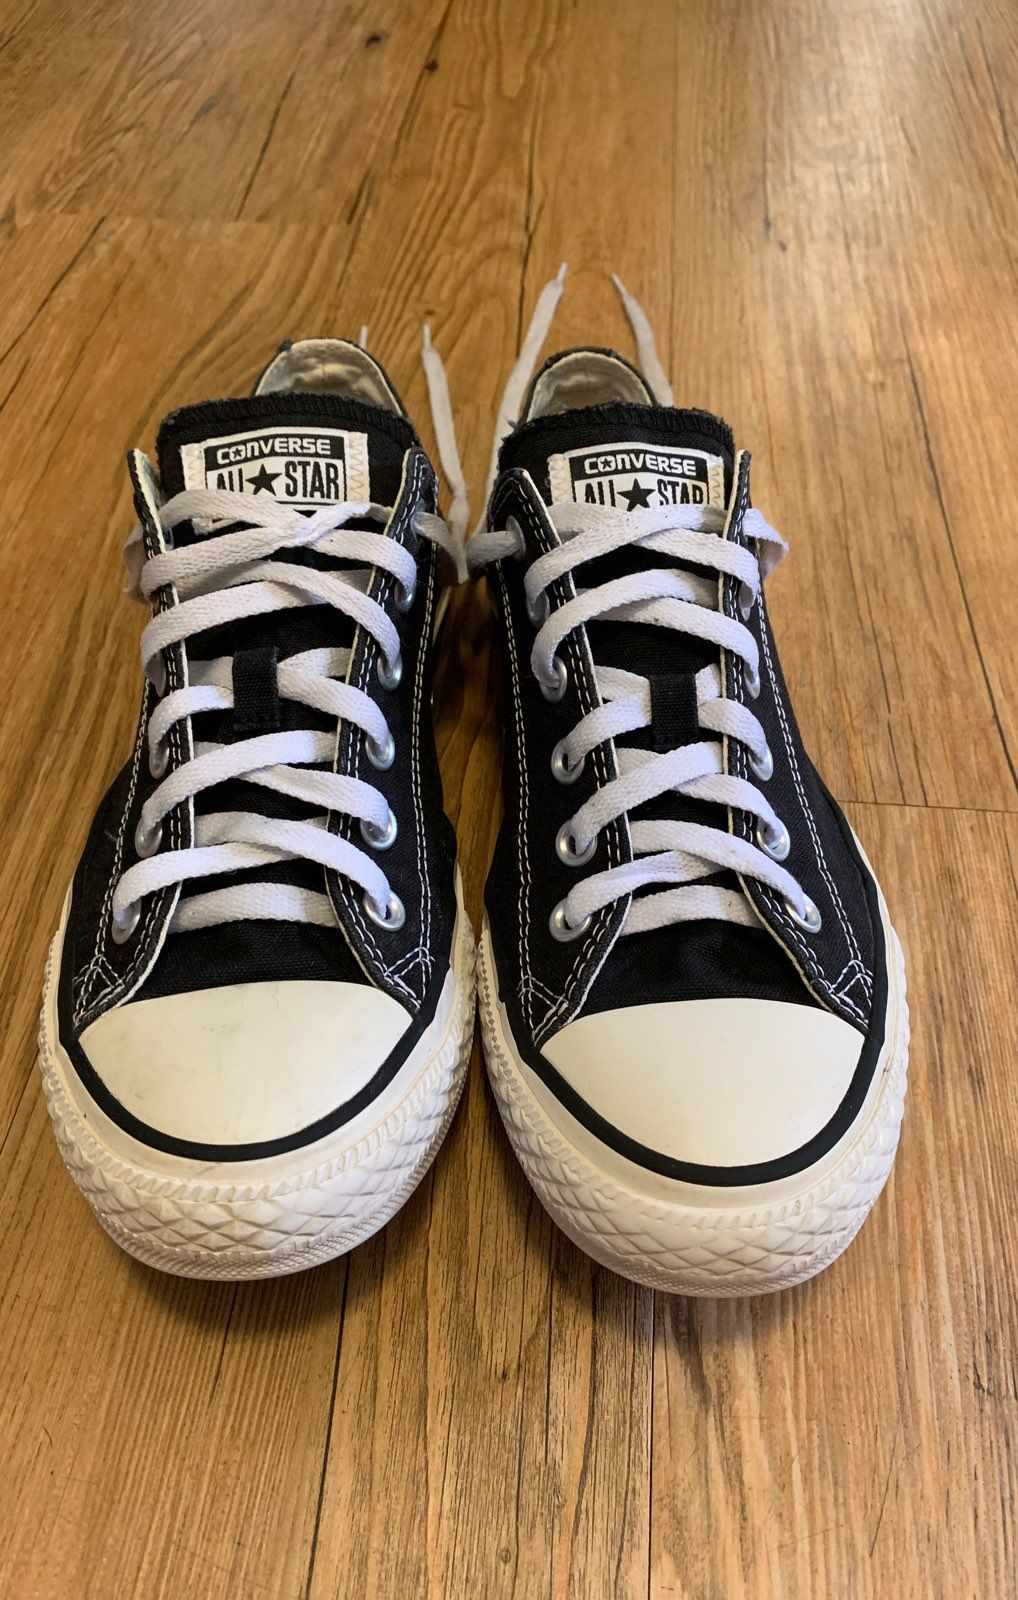 Black converse all star low top sneakers in excellent used